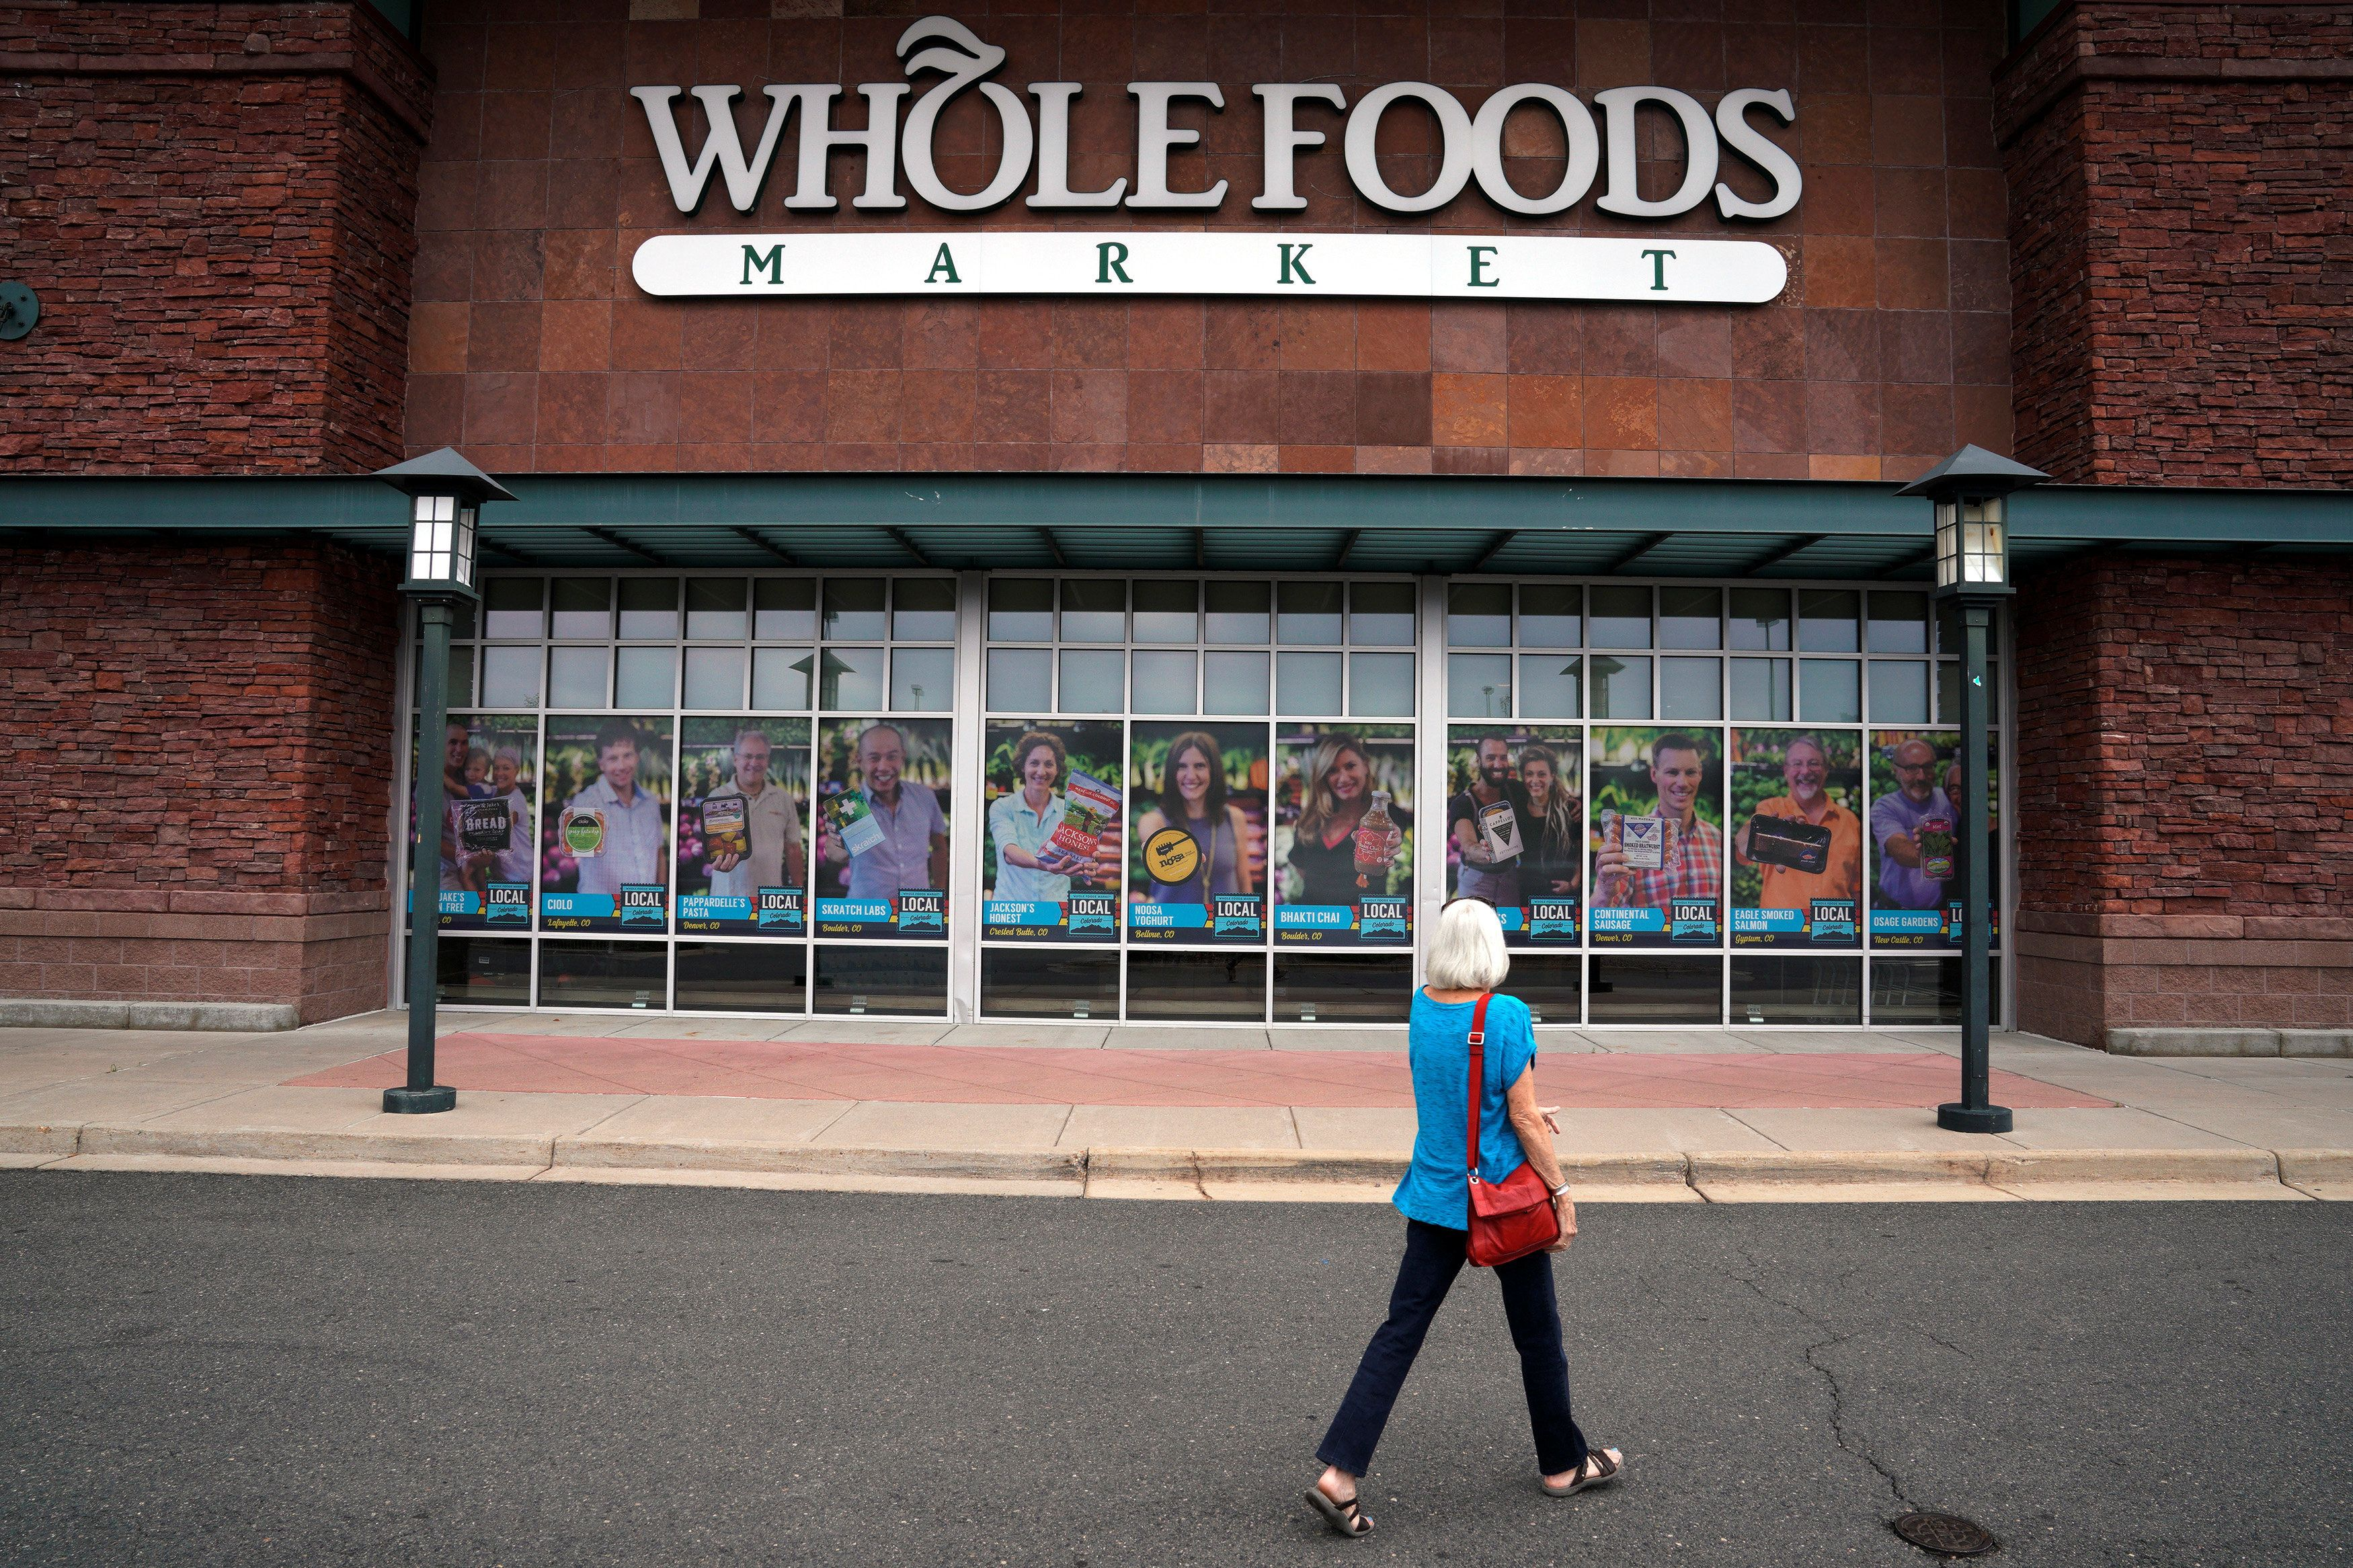 A customer enters the Whole Foods Market in Superior, Colorado on July 26, 2017. (REUTERS/Rick Wilking)